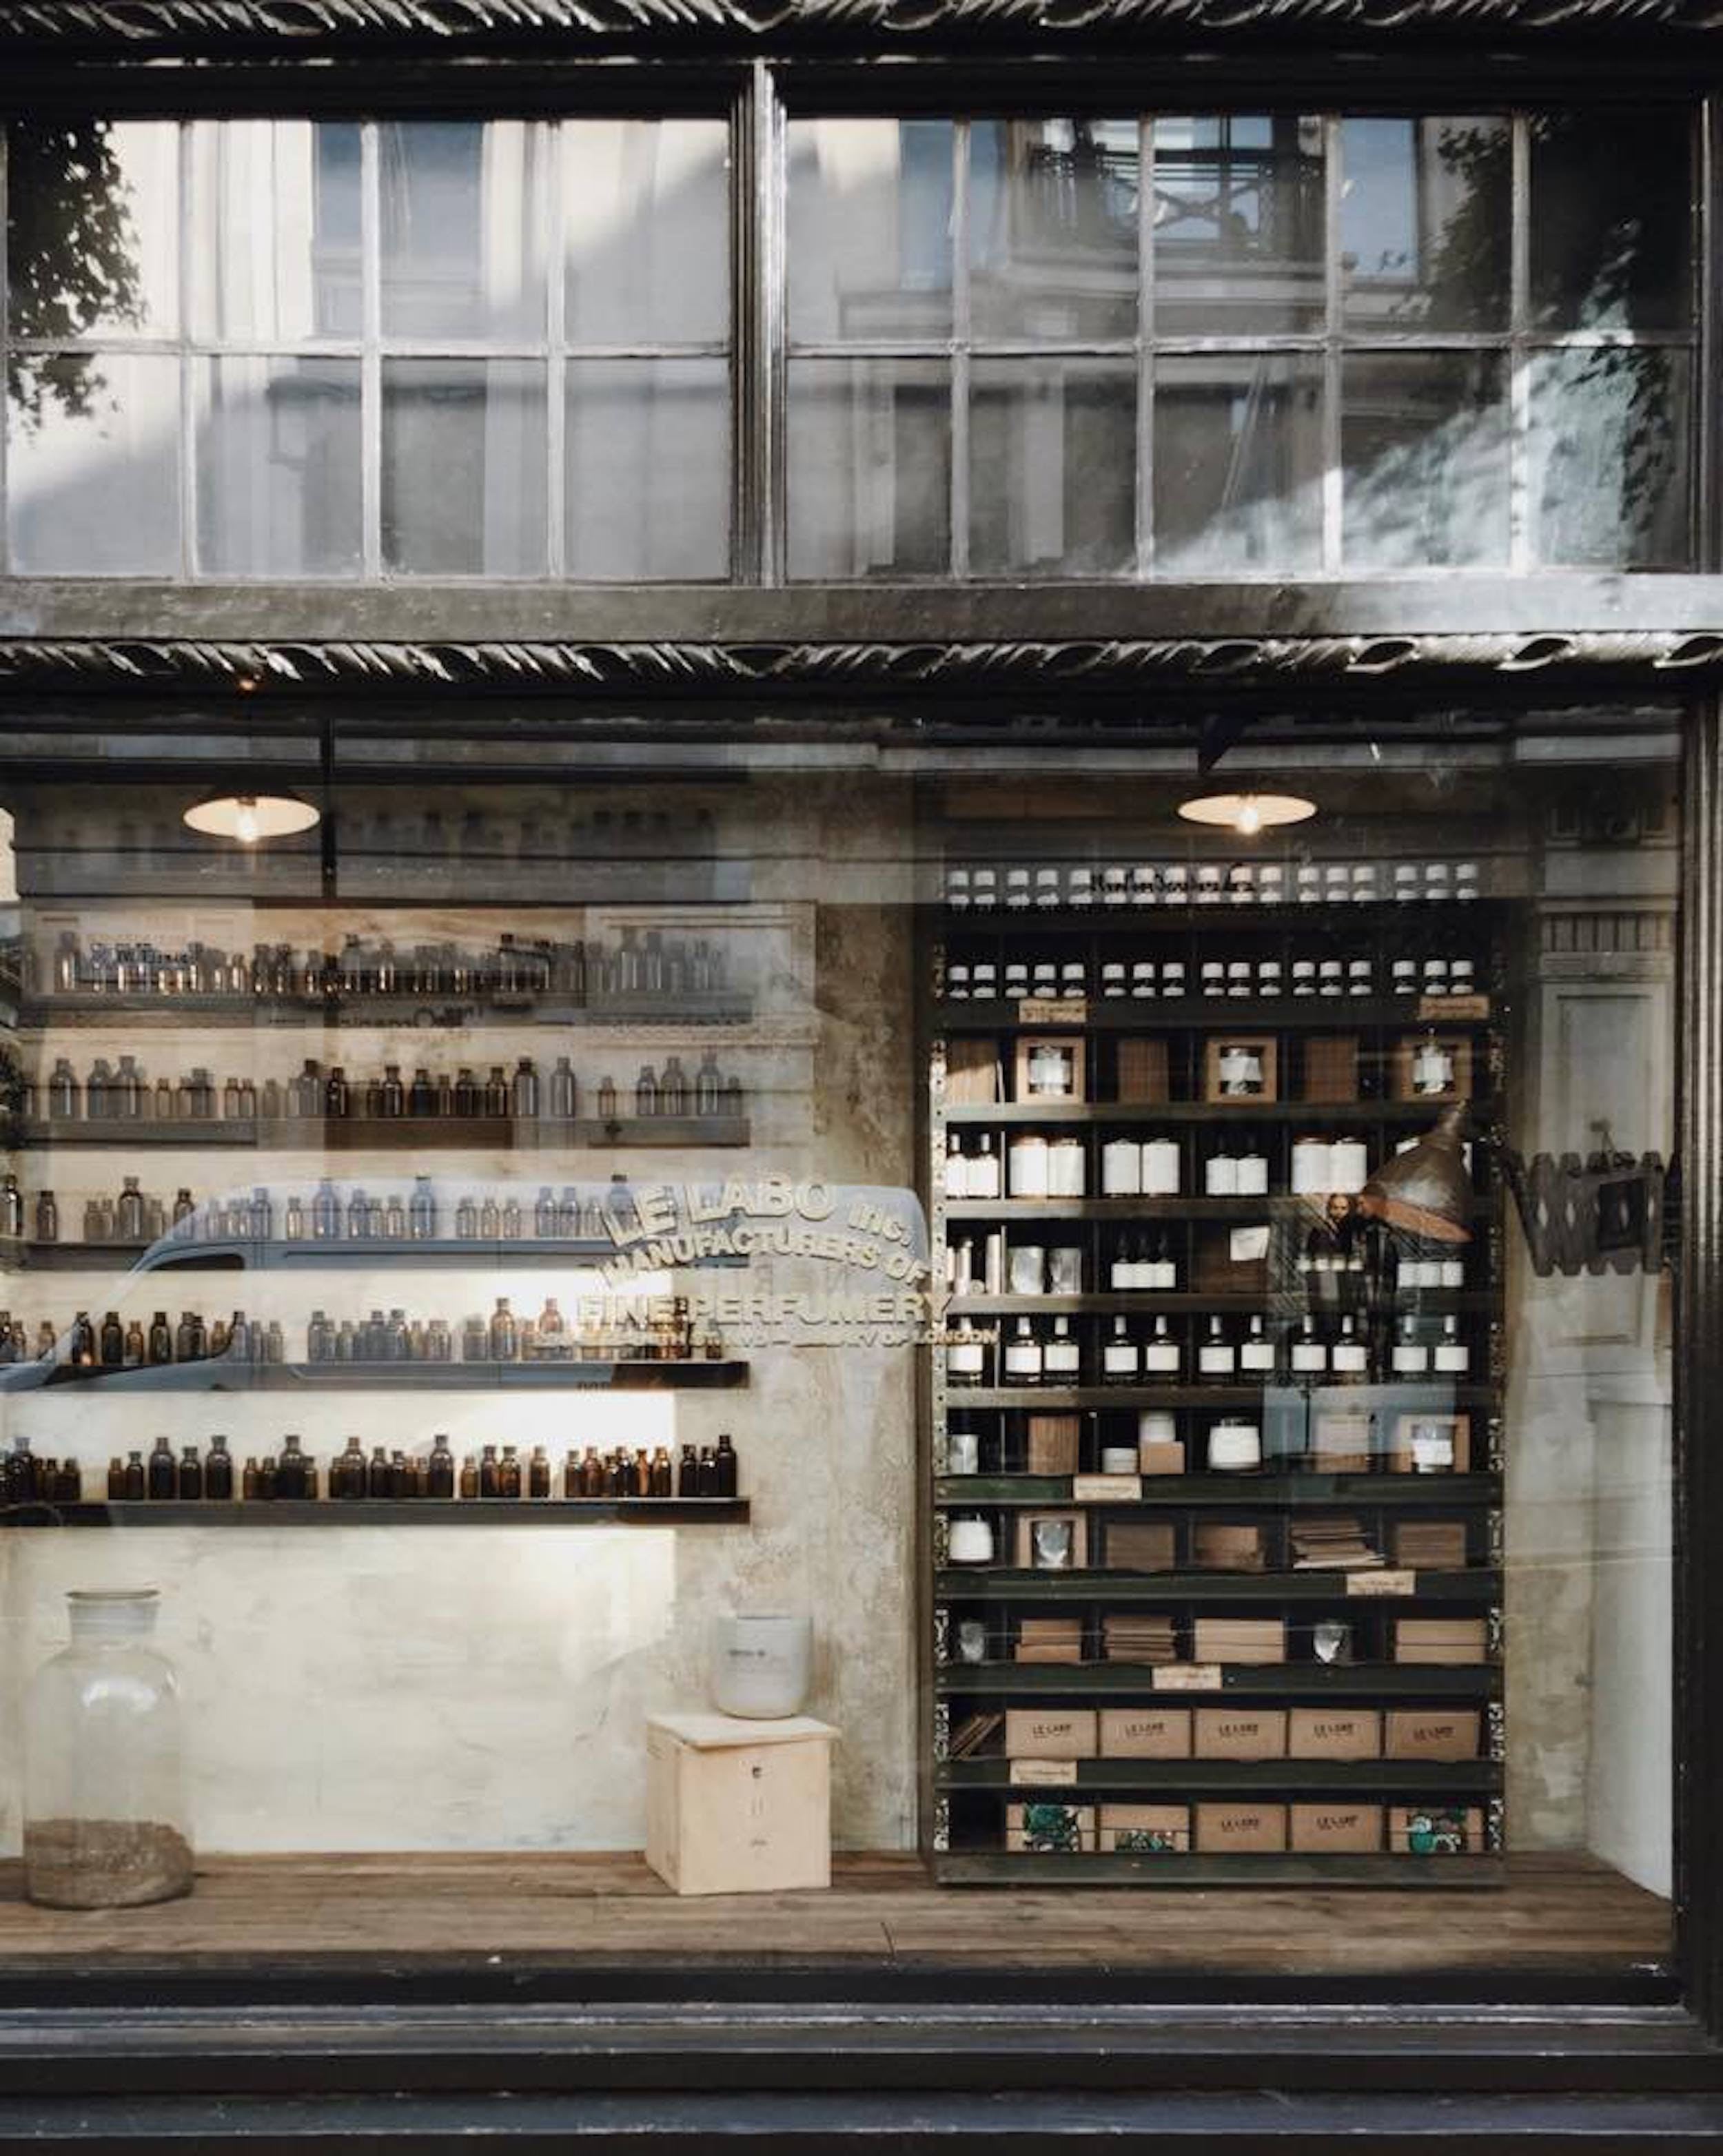 The front view of a shop with glass windows containing glass bottles and a shelf in london.